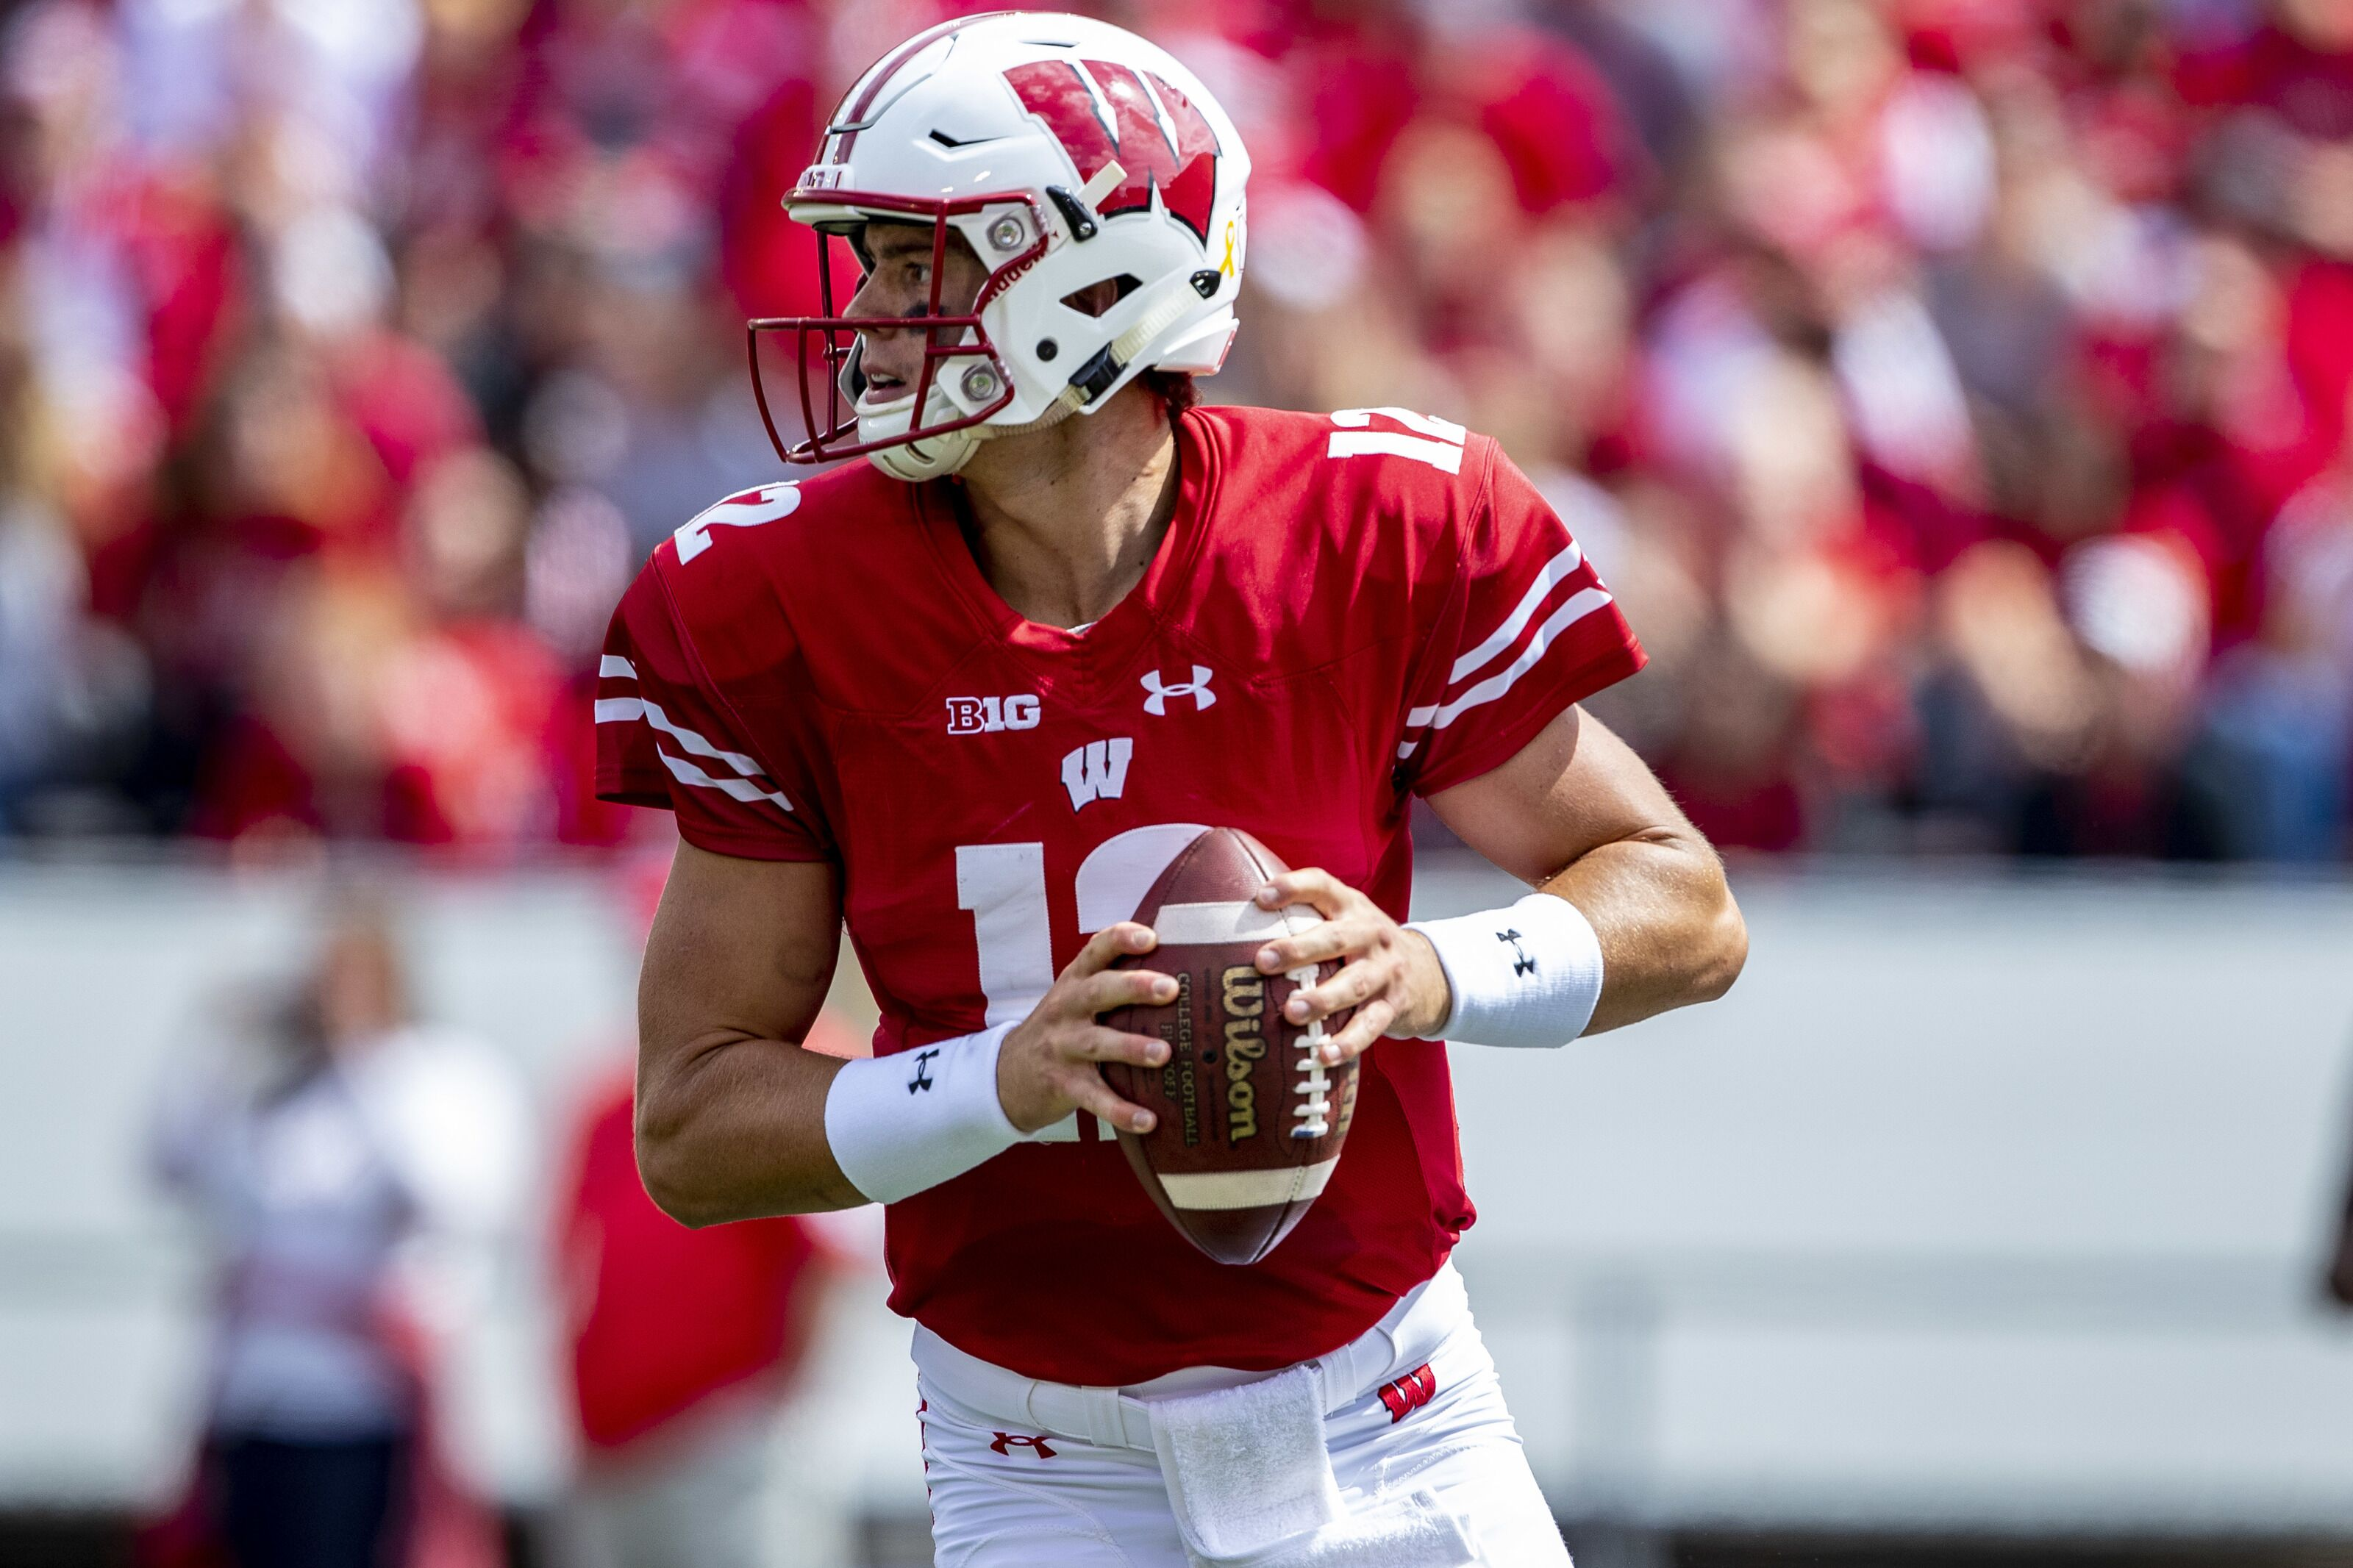 Alex Hornibrook brings stability, experience to Florida State QB situation